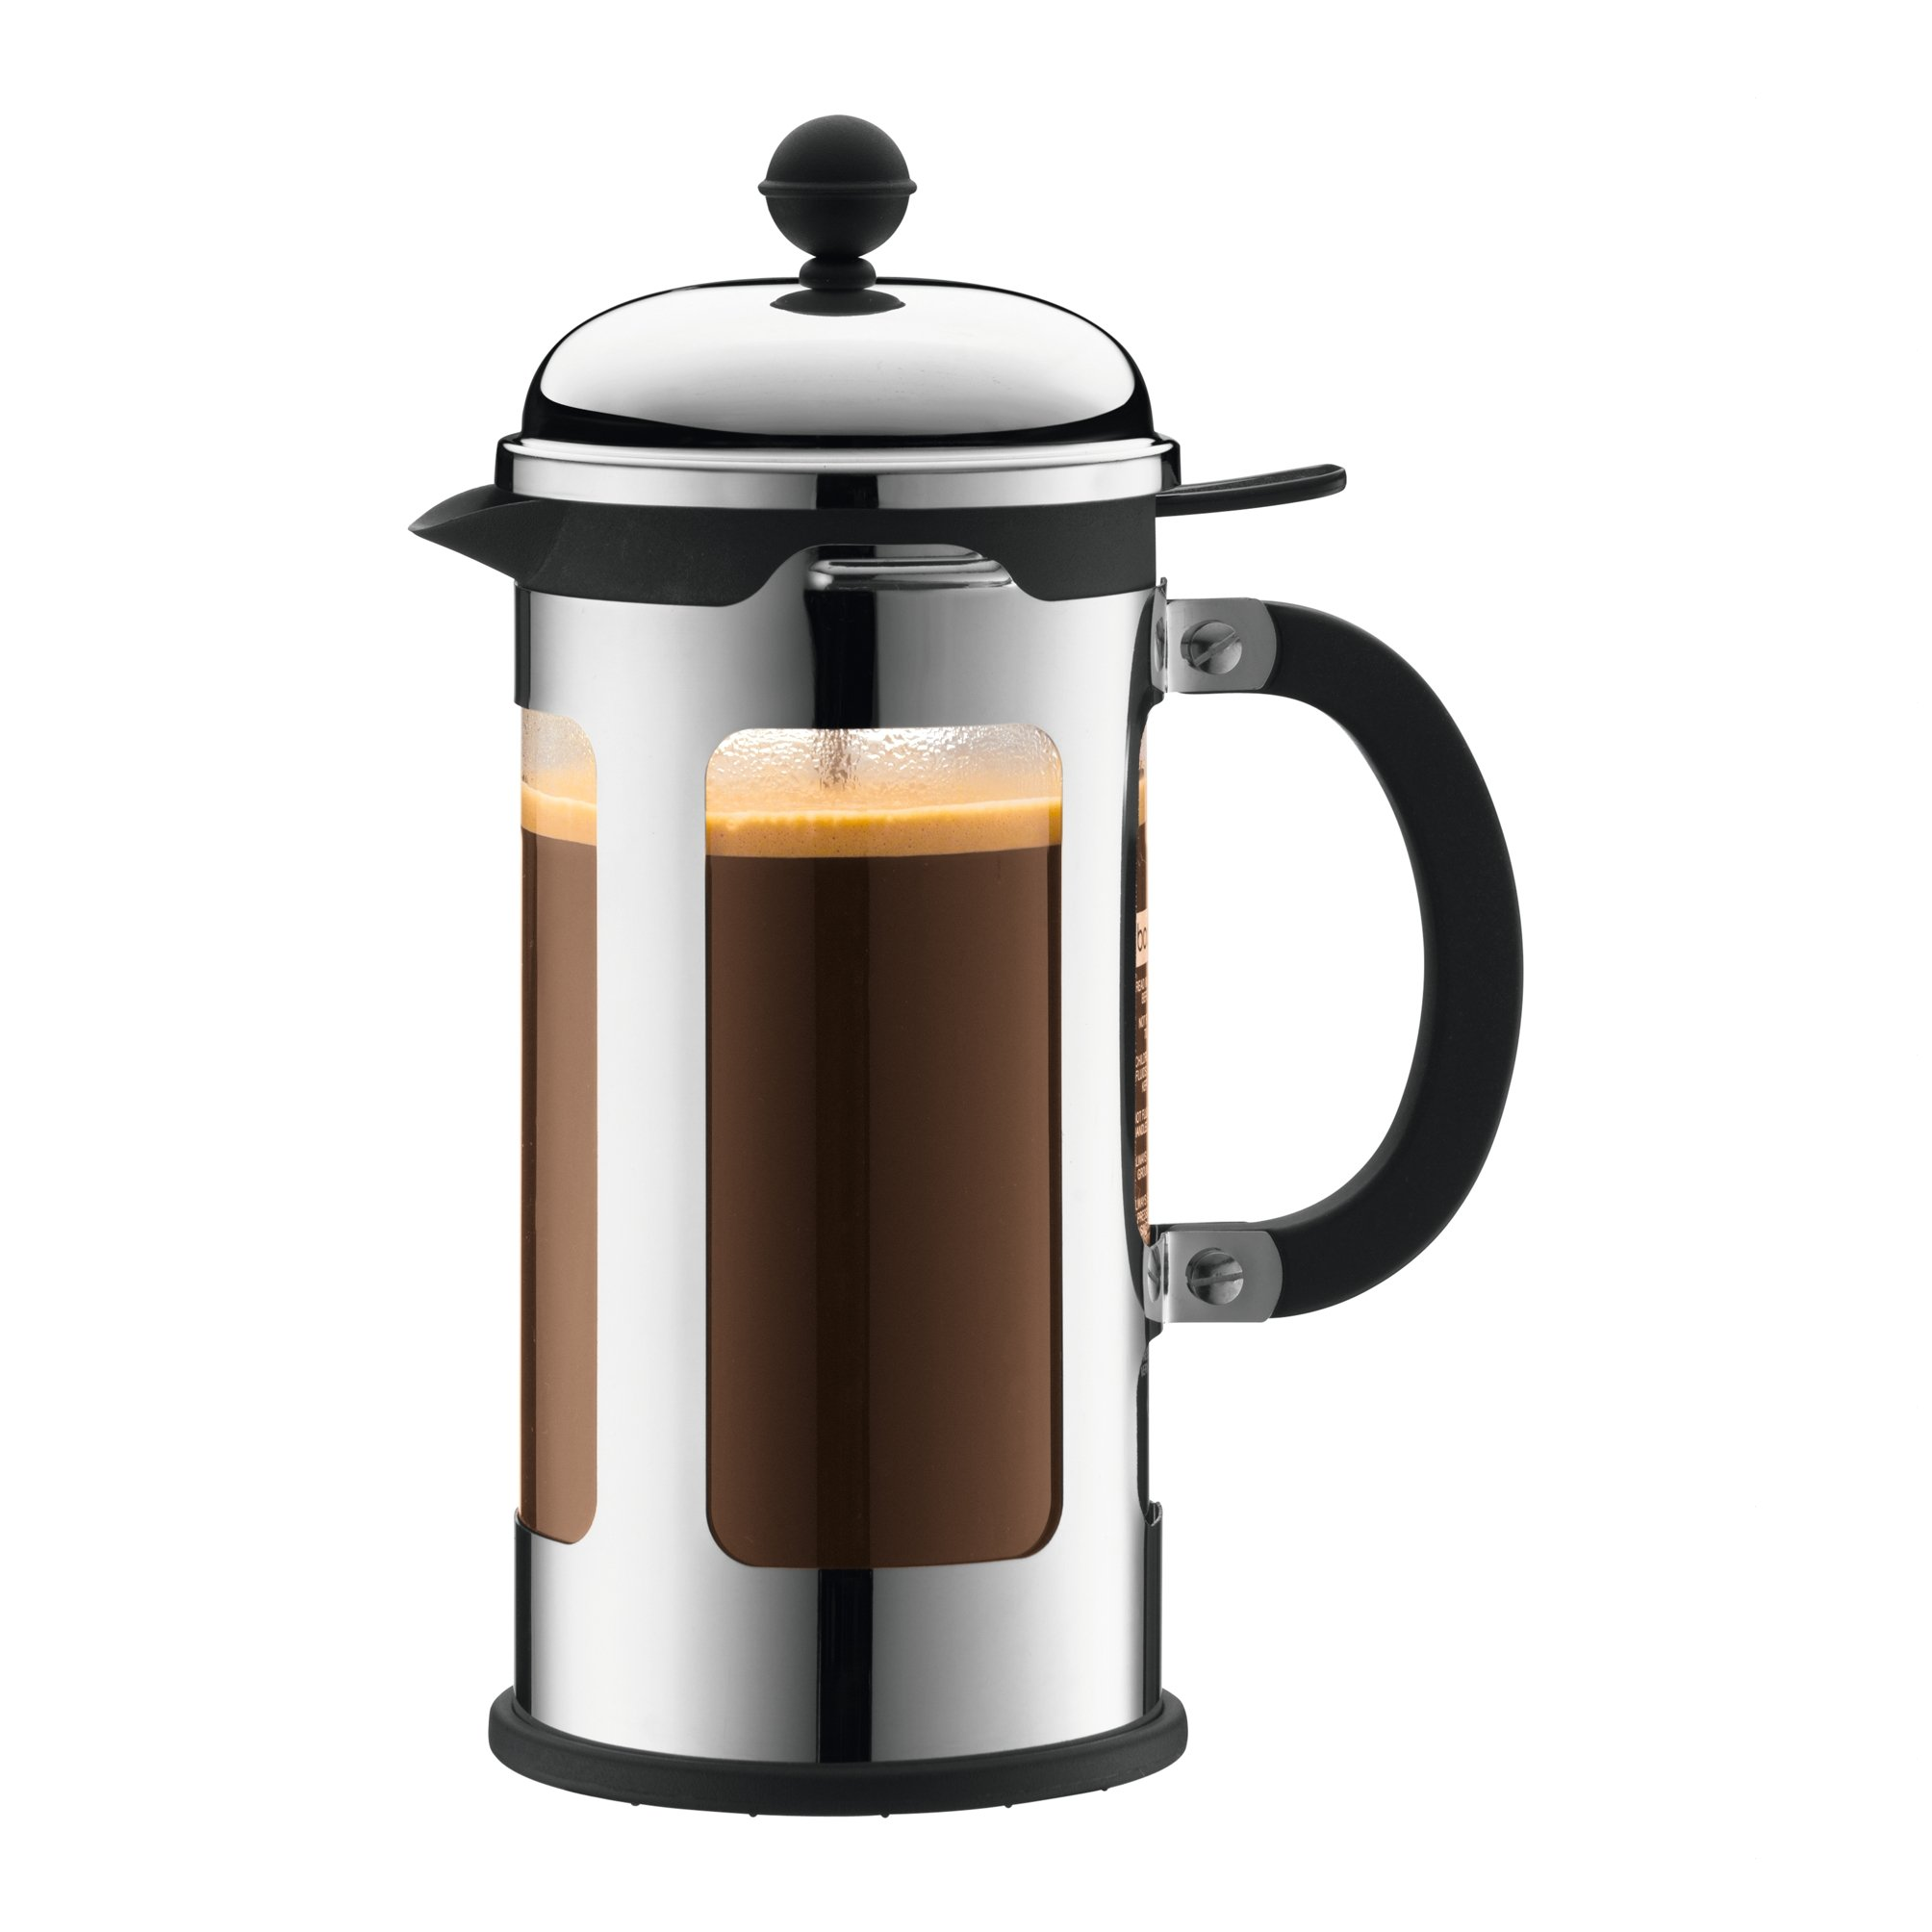 Chambord 8 Cup Coffee Maker - 1.0 Litre by Bodum